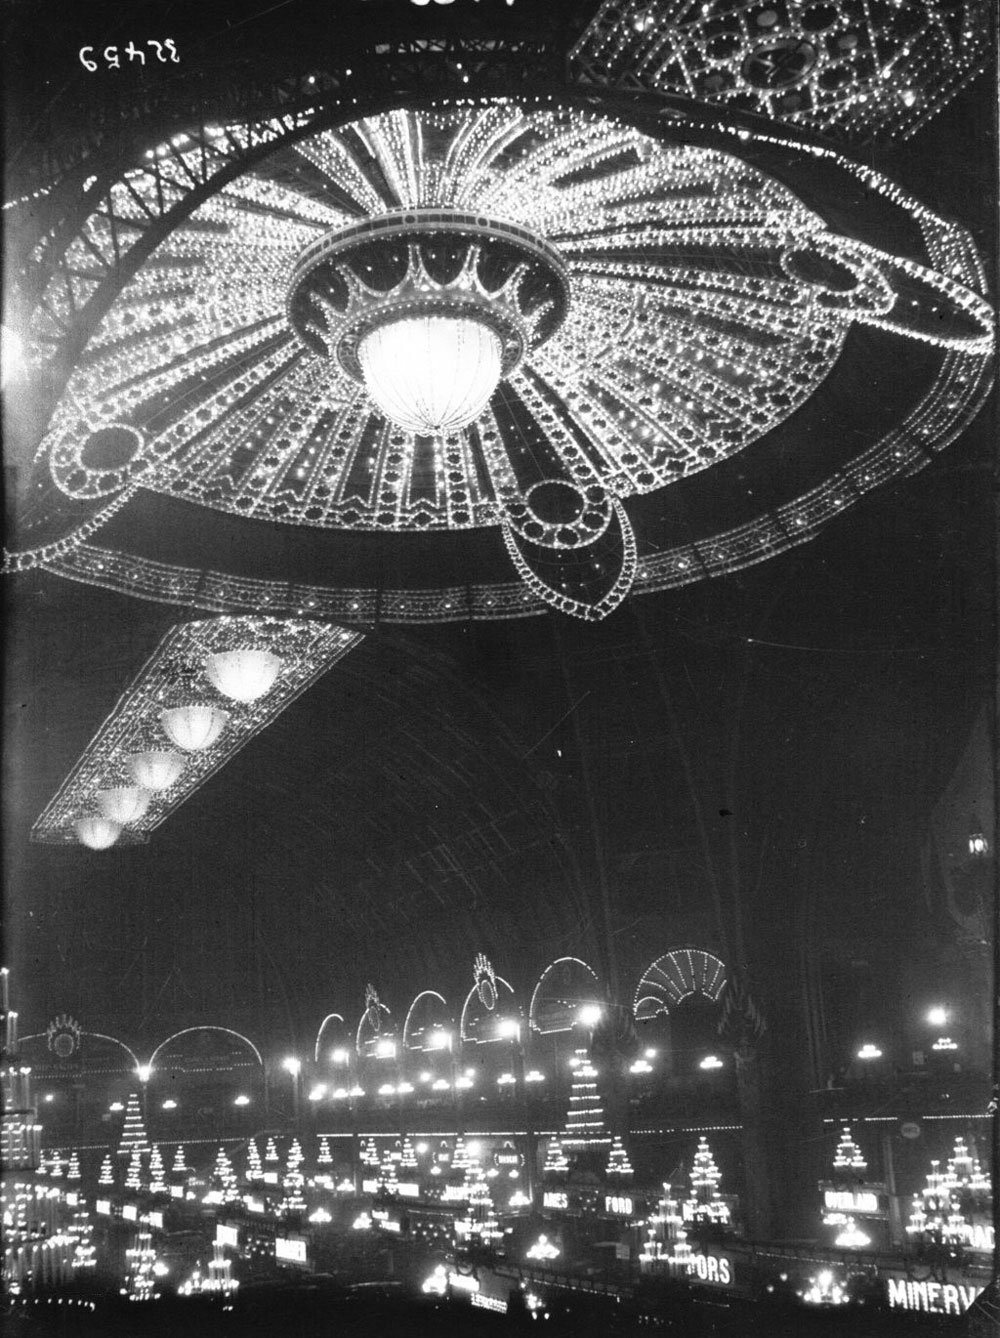 A black-and-white photograph of a large room with high ceilings. The ceiling is decorated with an ornate lighting design.